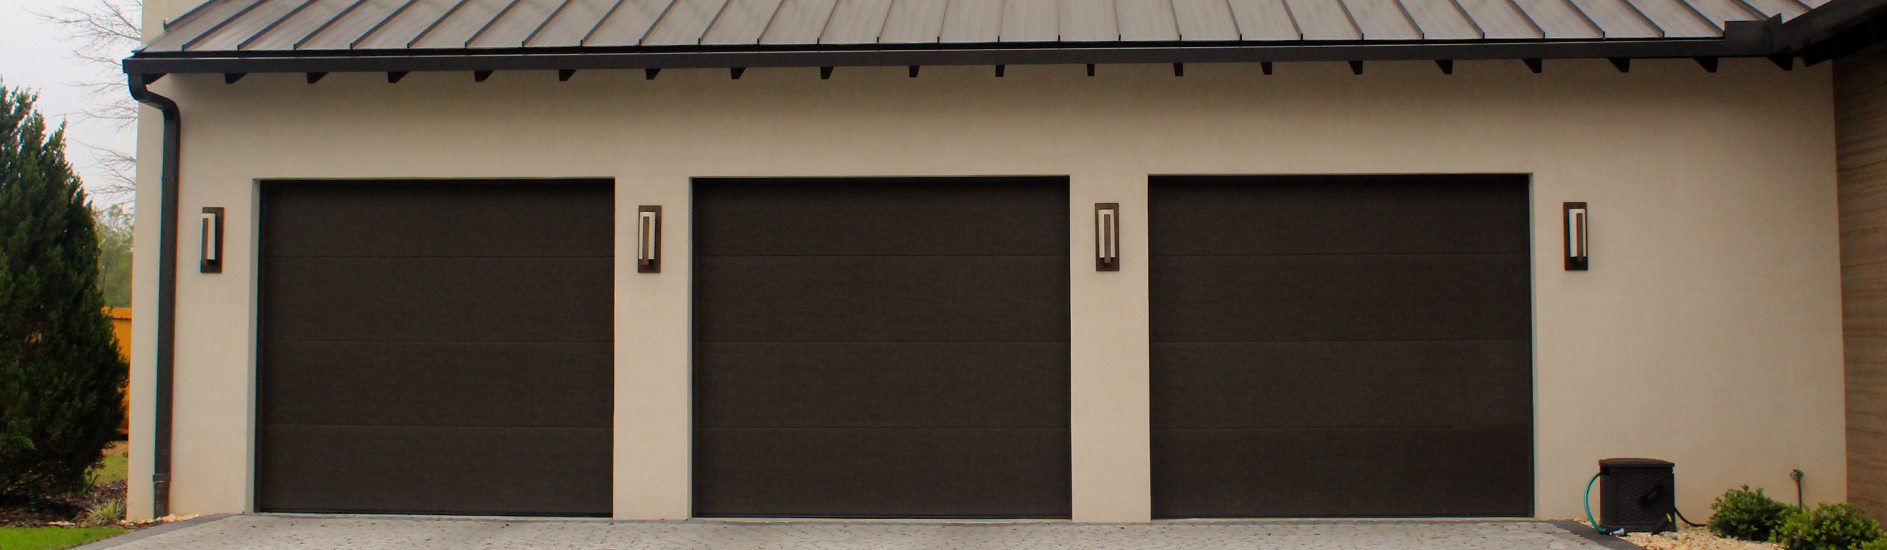 Wayne dalton taupe garage doors for Wayne dalton garage doors